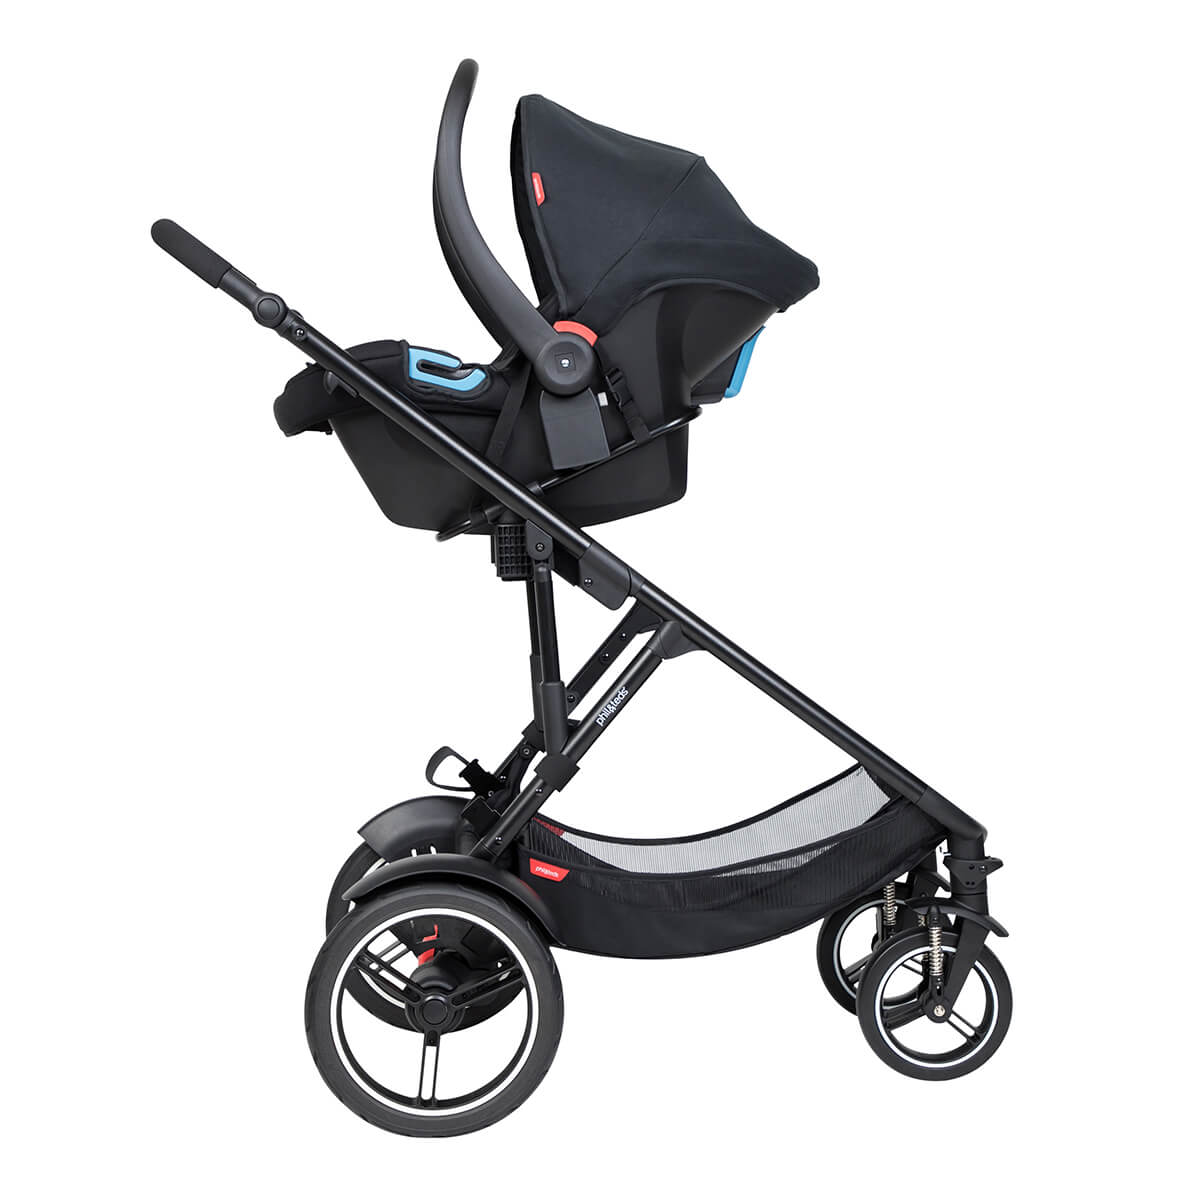 https://cdn.accentuate.io/4509529440344/19272668119128/philteds-voyager-poussette-with-travel-system-in-parent-facing-mode-v1626484676601.jpg?1200x1200